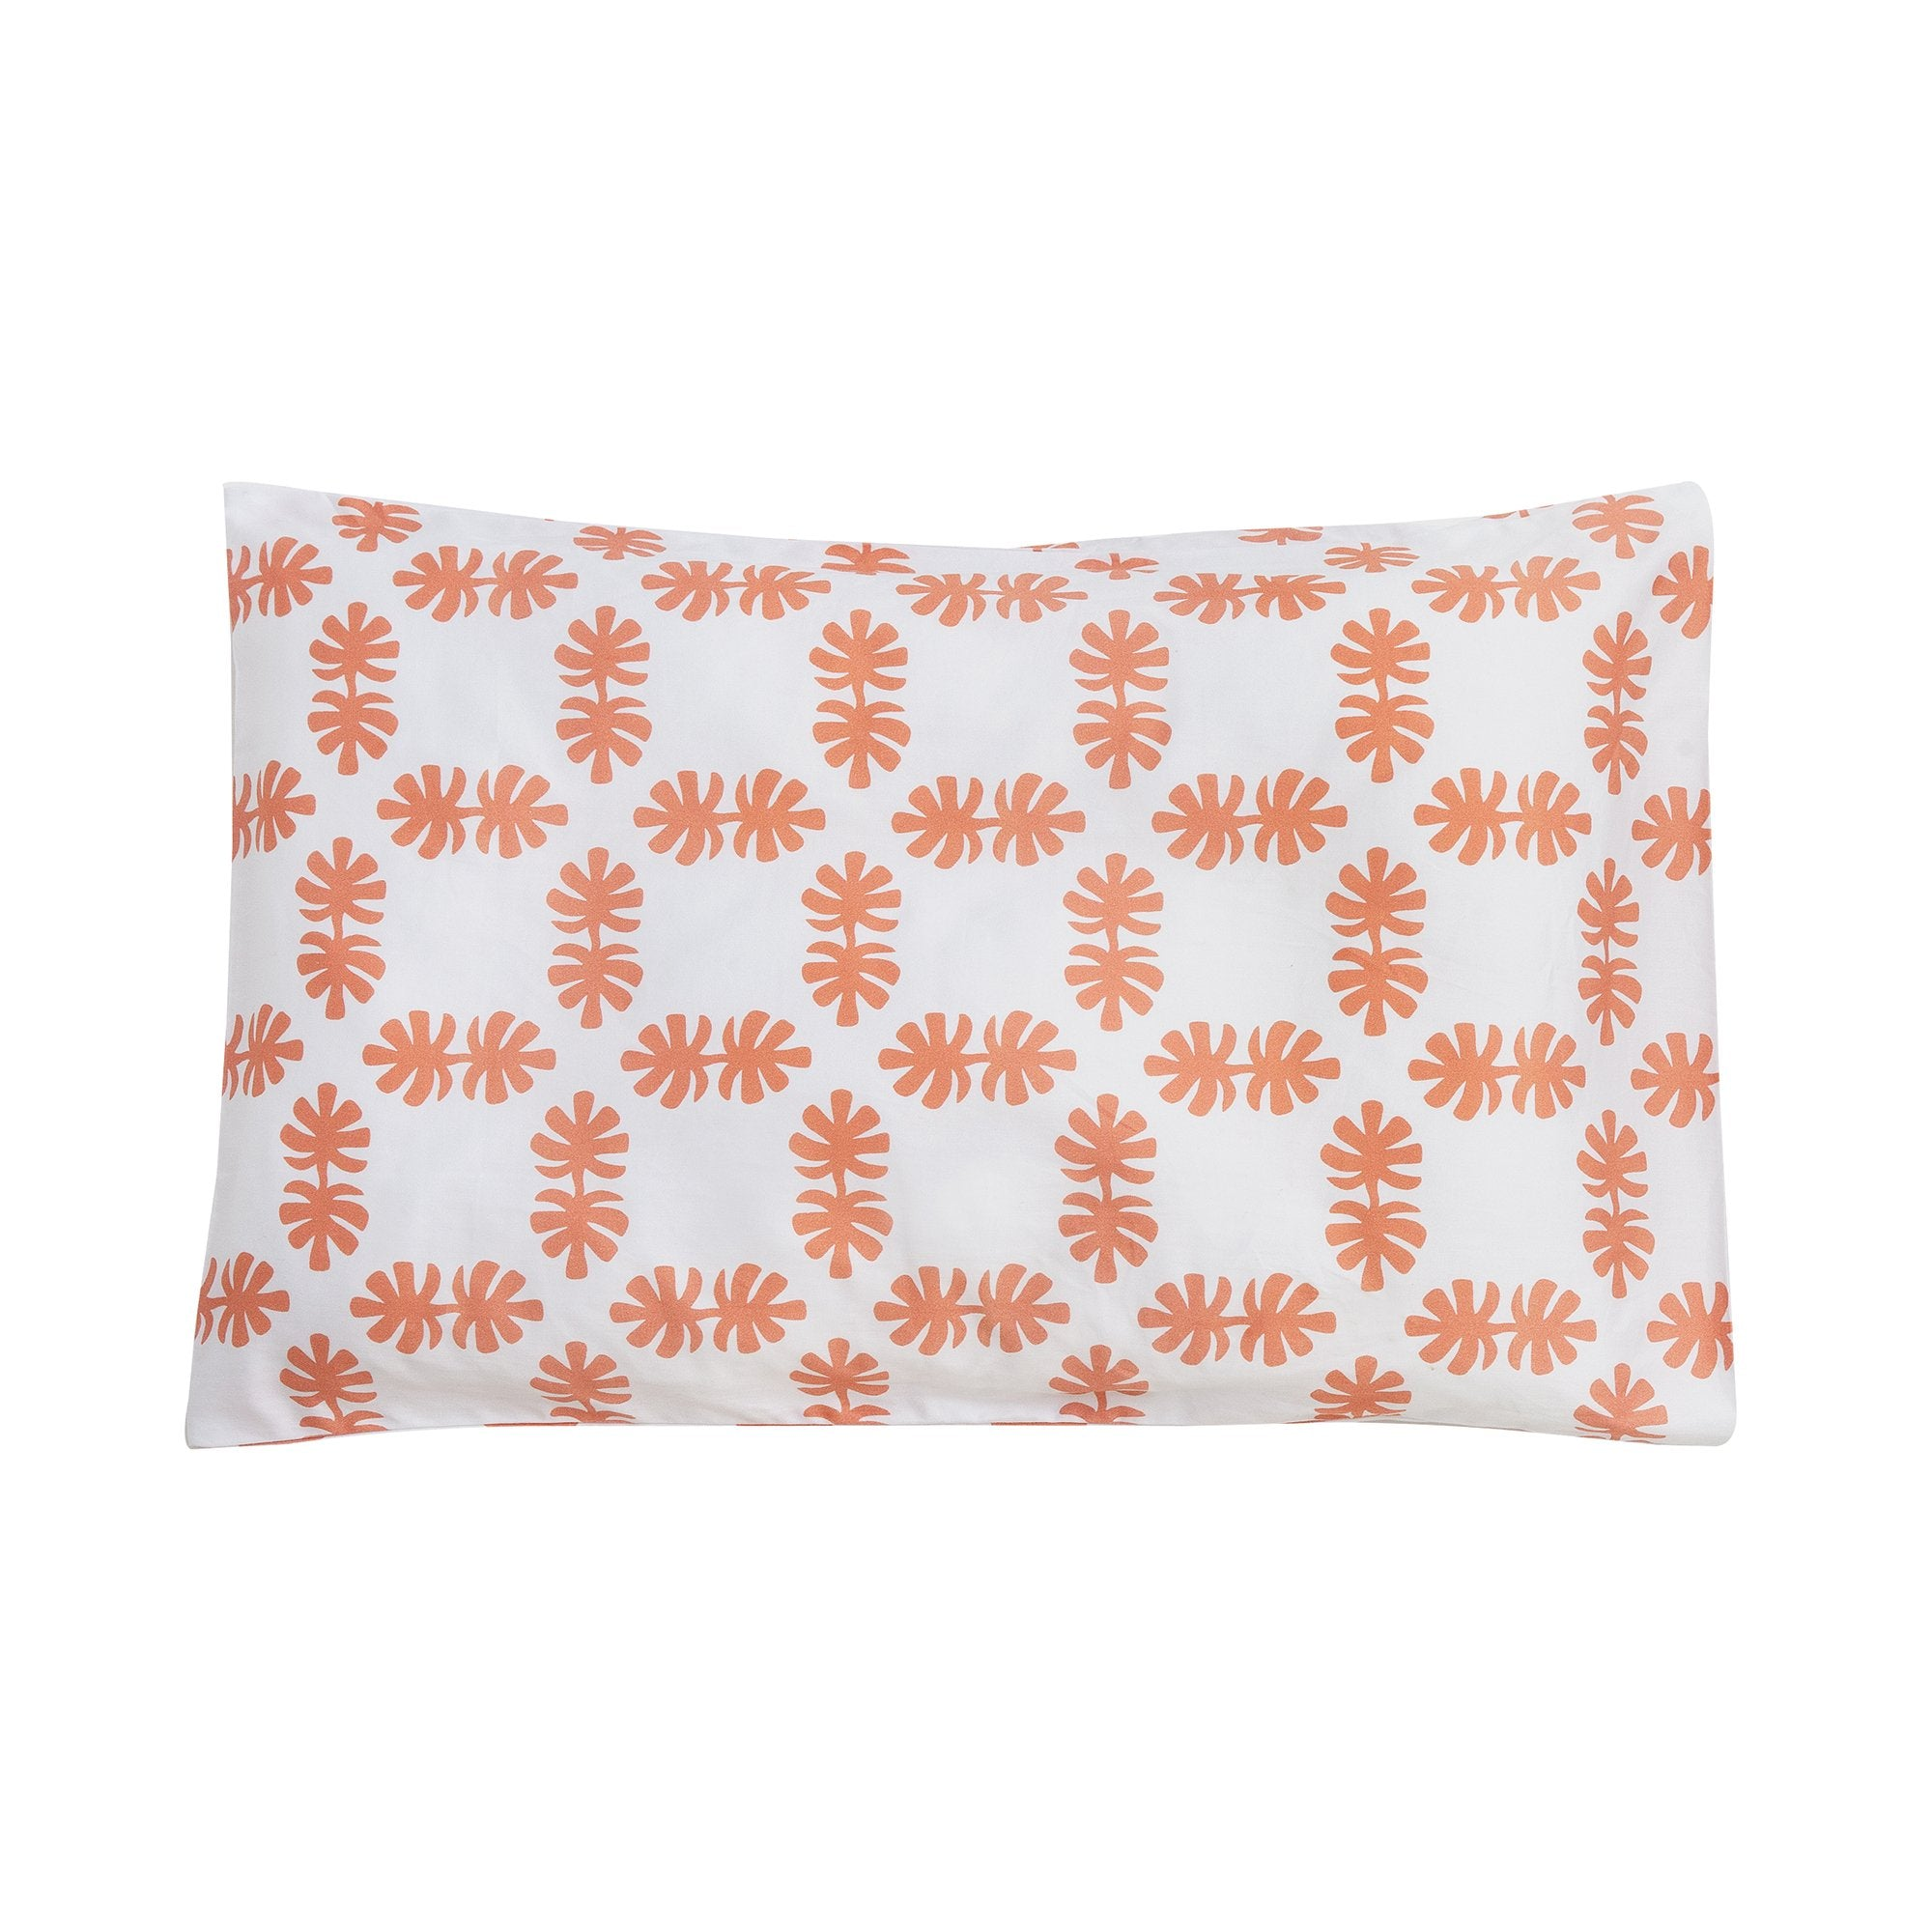 Kikau's Coral Orange Coconut Palm kids pillowcase on white background